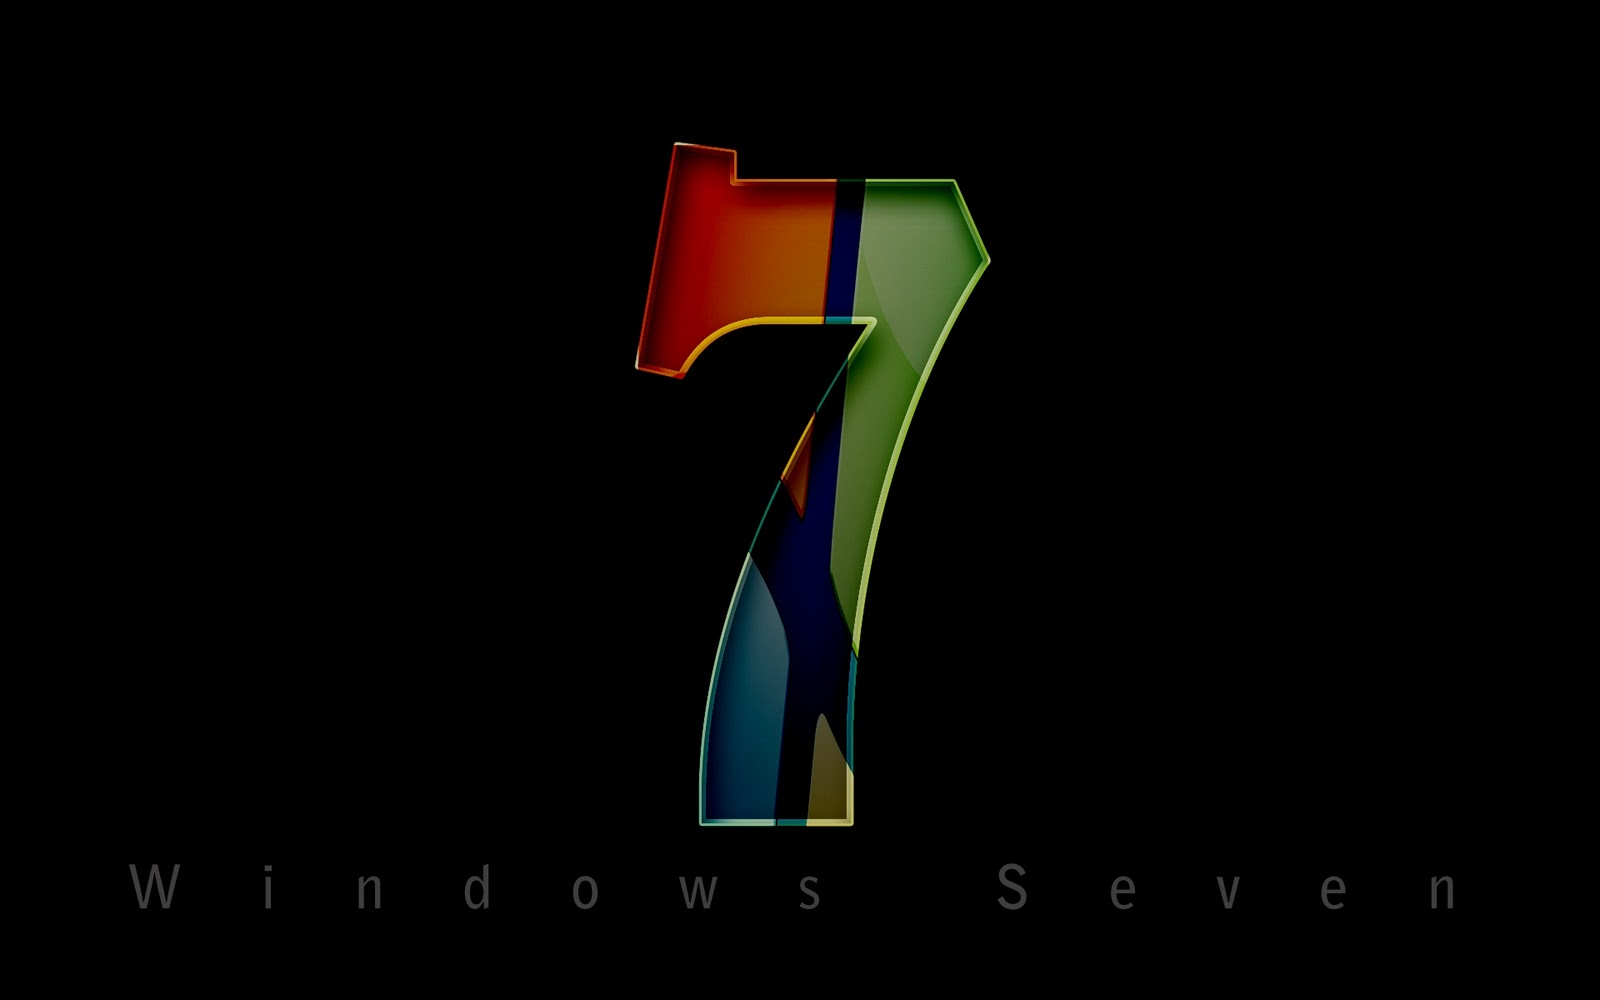 QQ Wallpapers: Seven Cool Windows 7 Wallpaper / Backgrounds